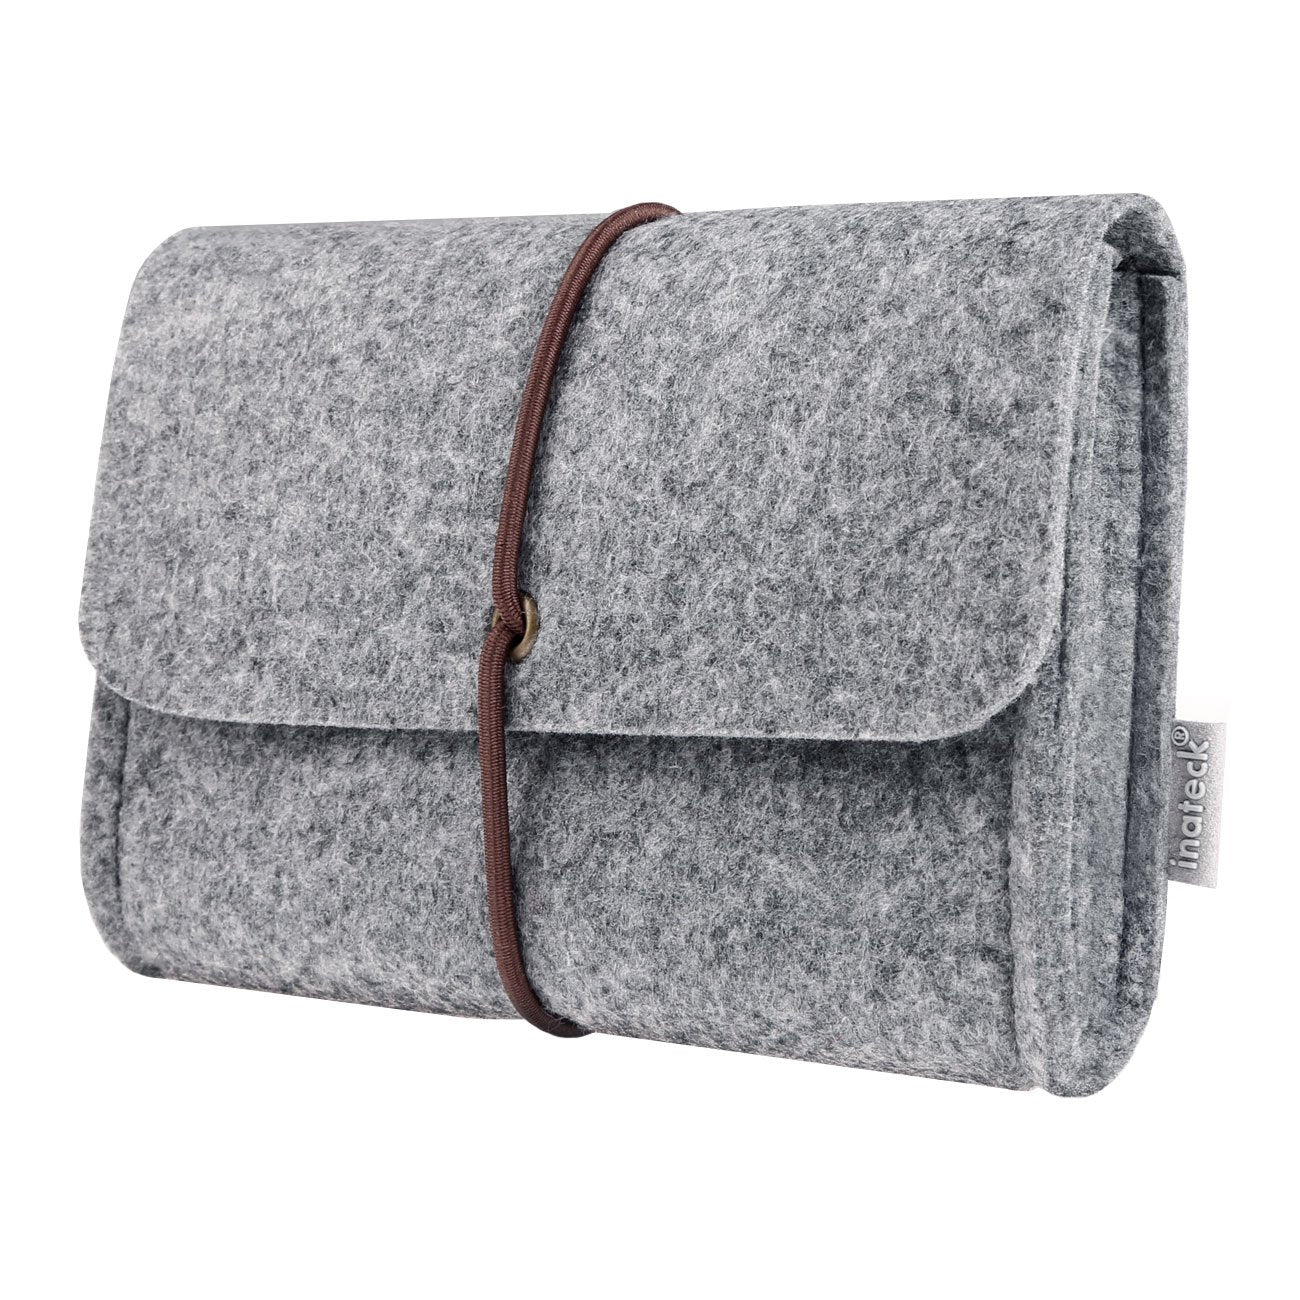 Inateck Felt Storage Pouch Bag MP0601, Light Gray